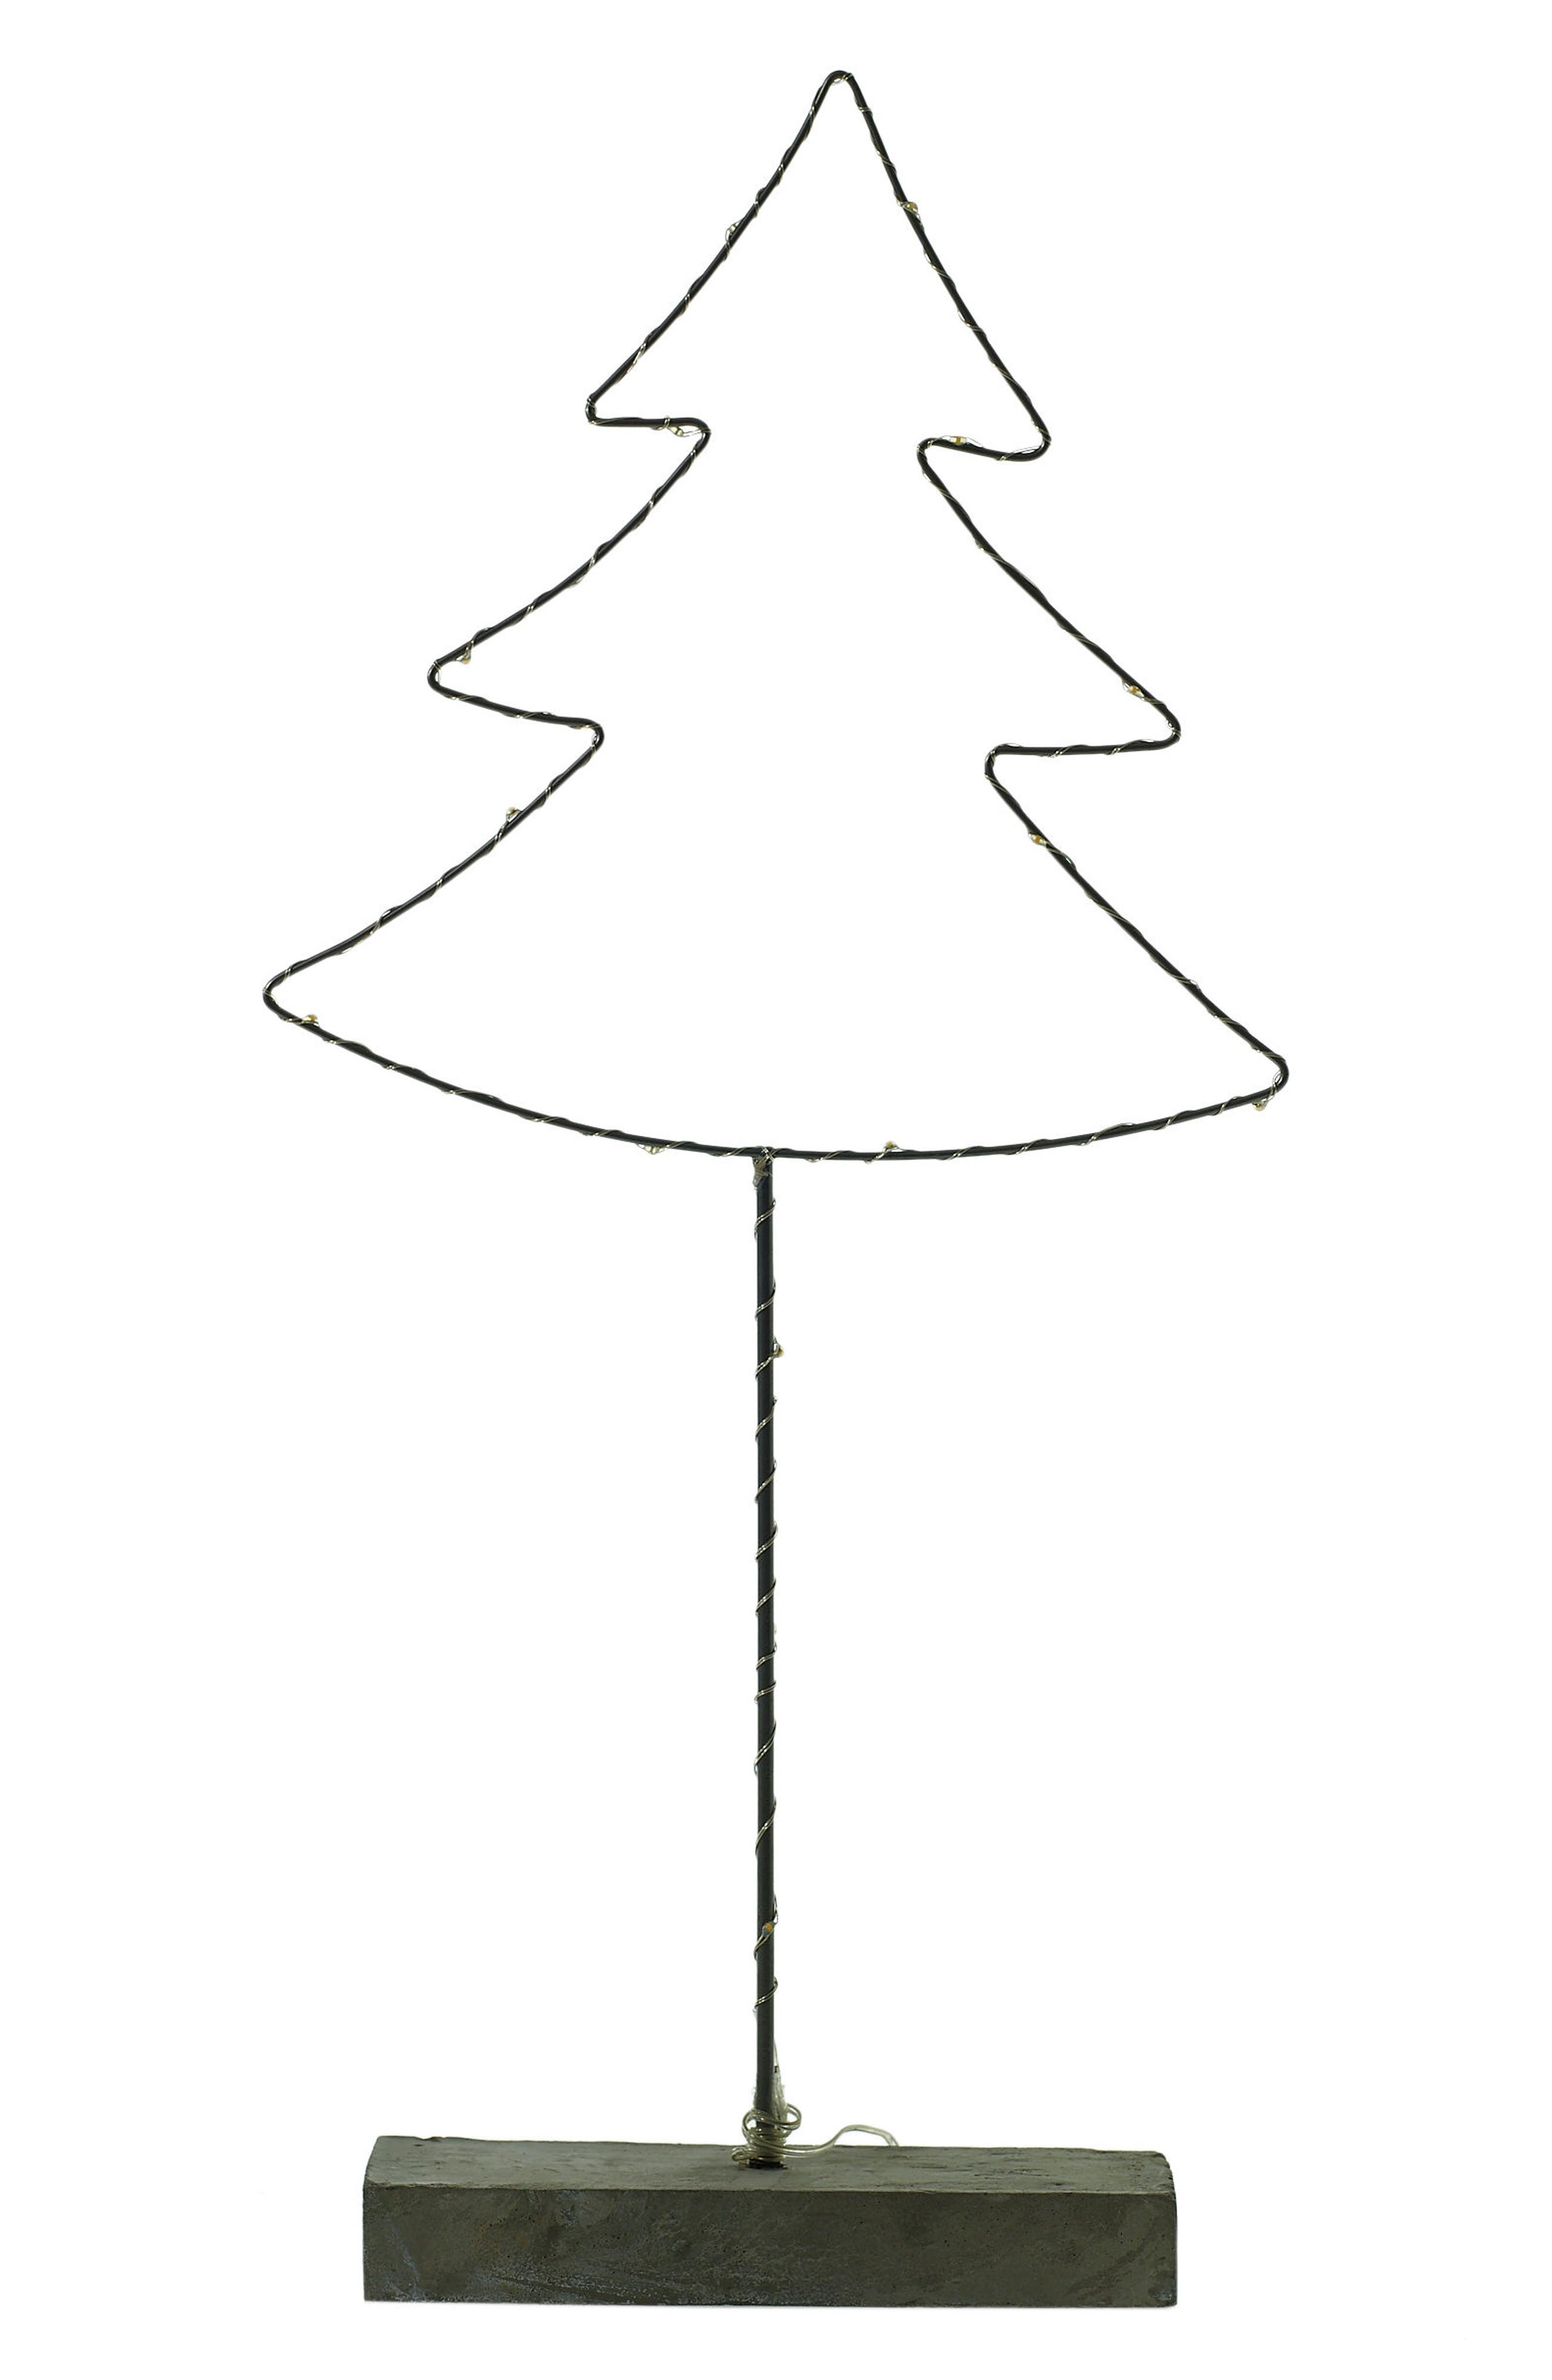 Alternate Image 1 Selected - Accent Decor Glee LED Wire Tree